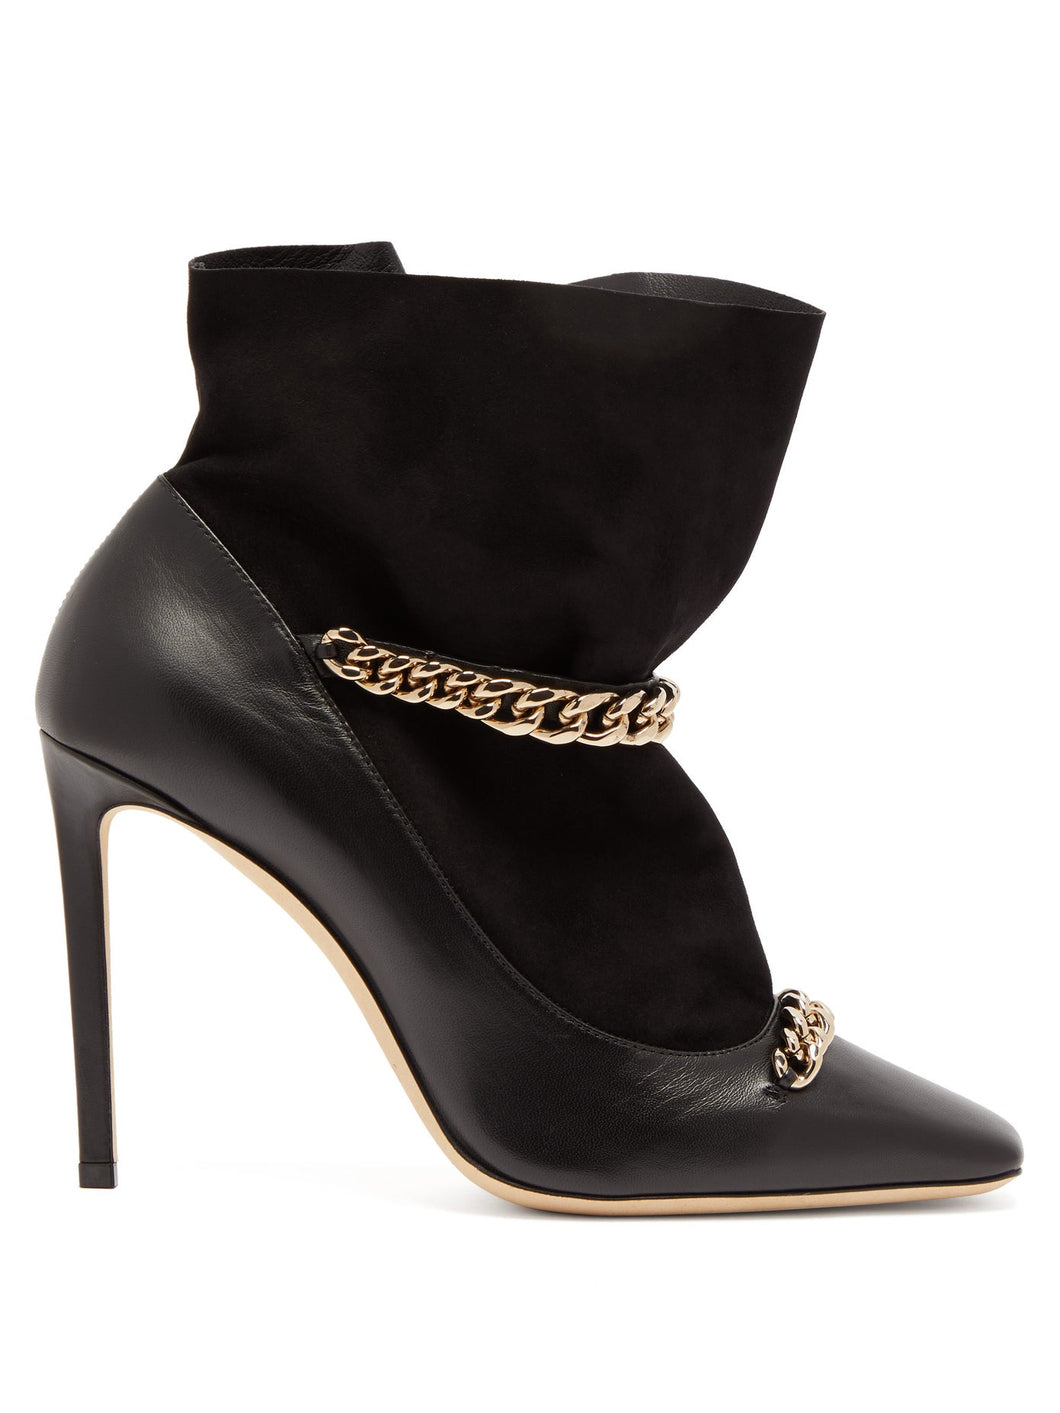 Maruxa 100 chain-strap leather ankle boots